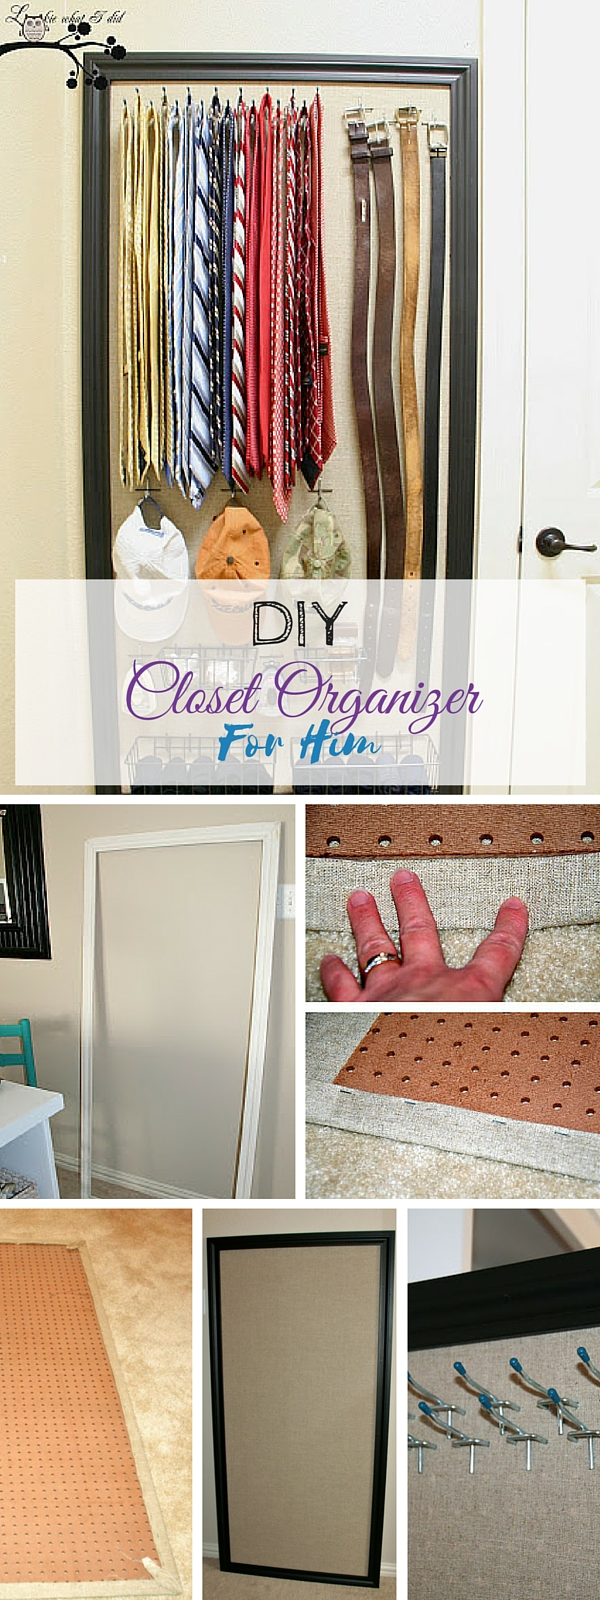 Check out the tutorial: #DIY Closet Organizer for Him #crafts